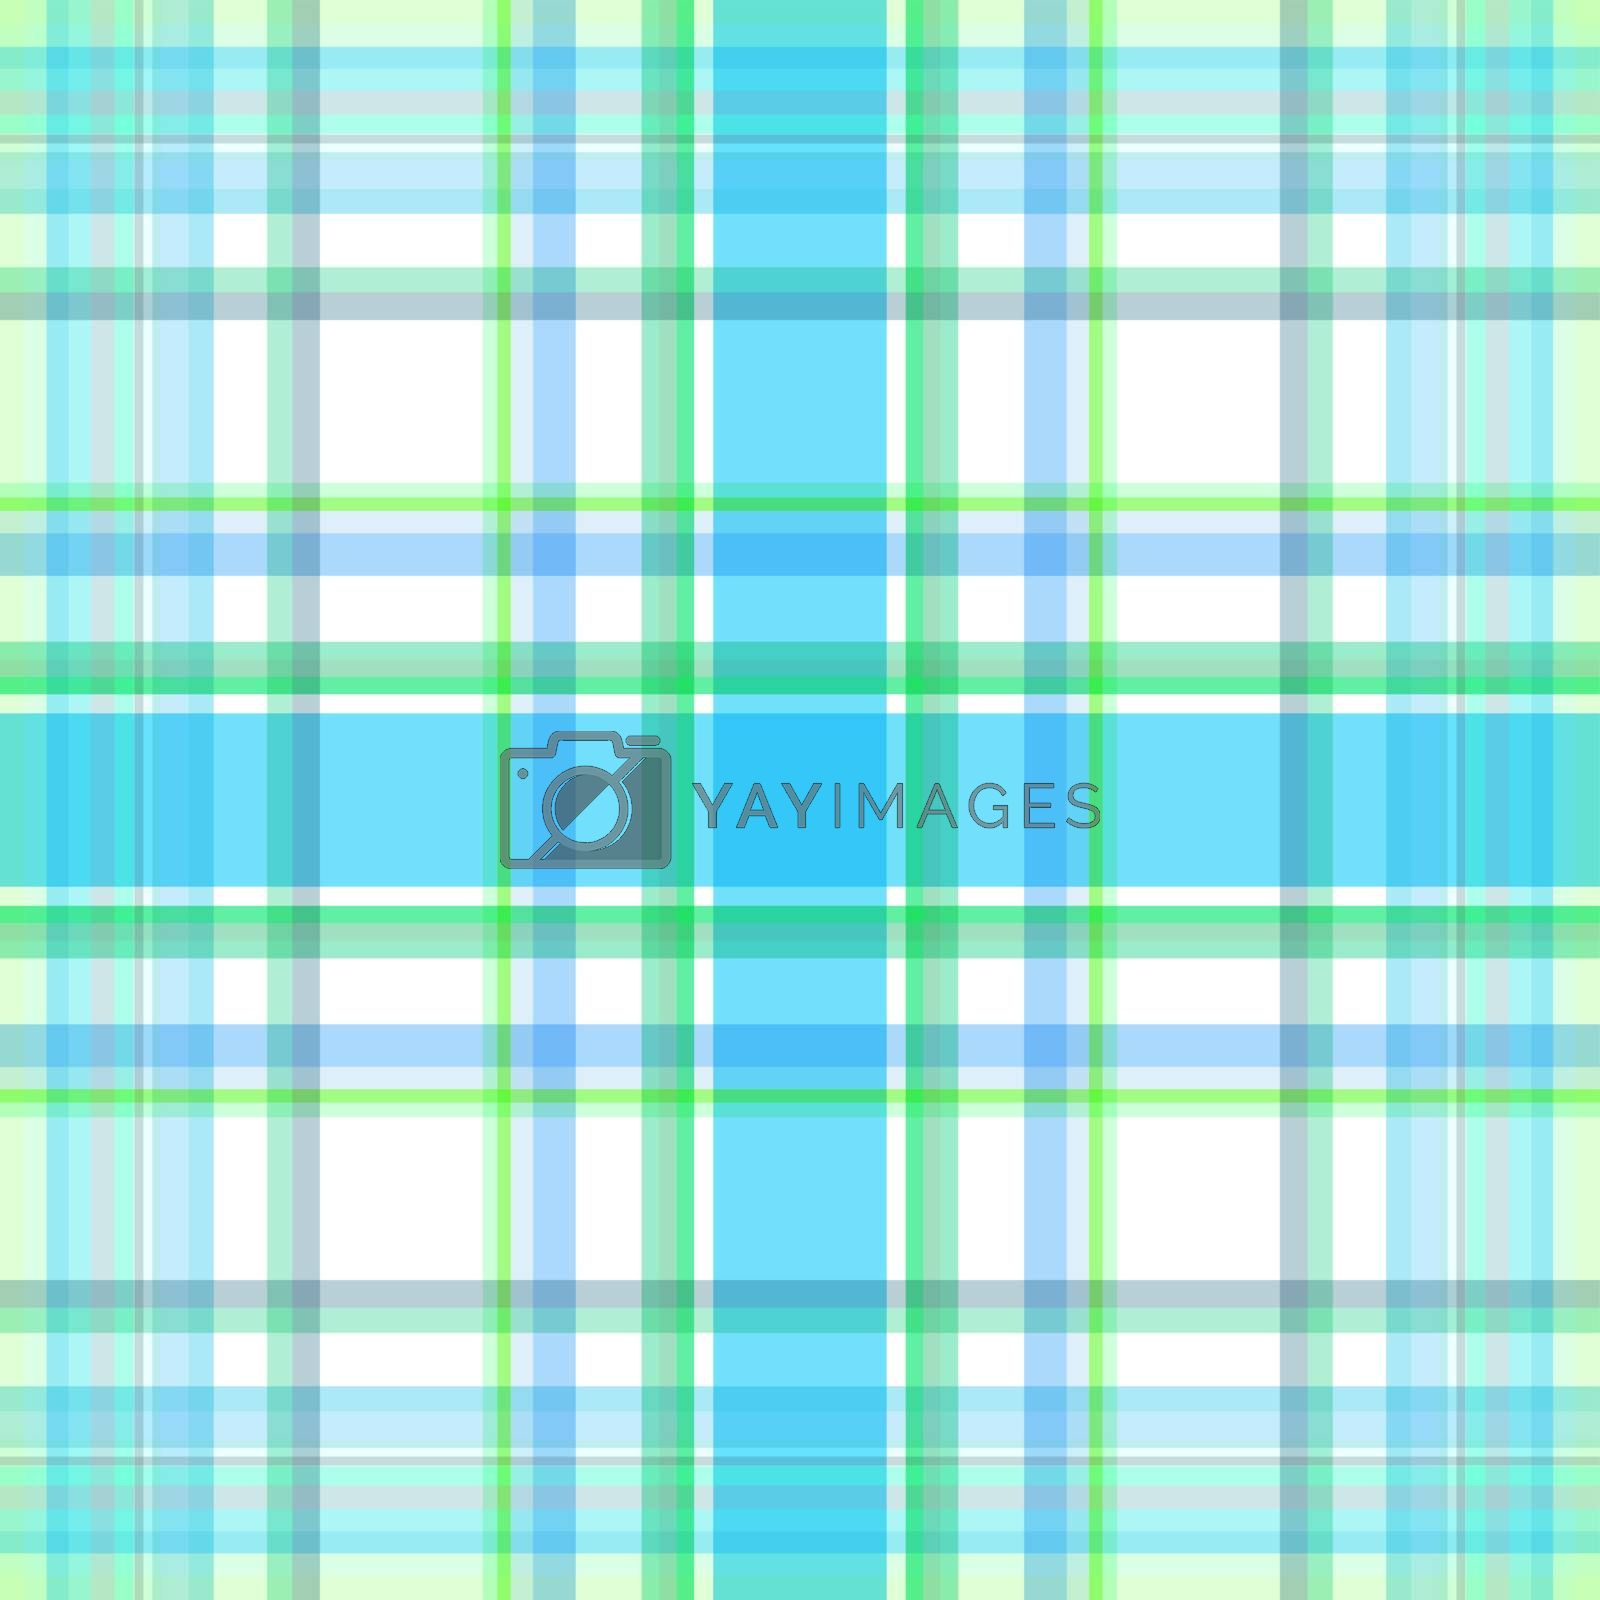 Repeating white-green-blue checkered diagonal pattern (vector, EPS 10)